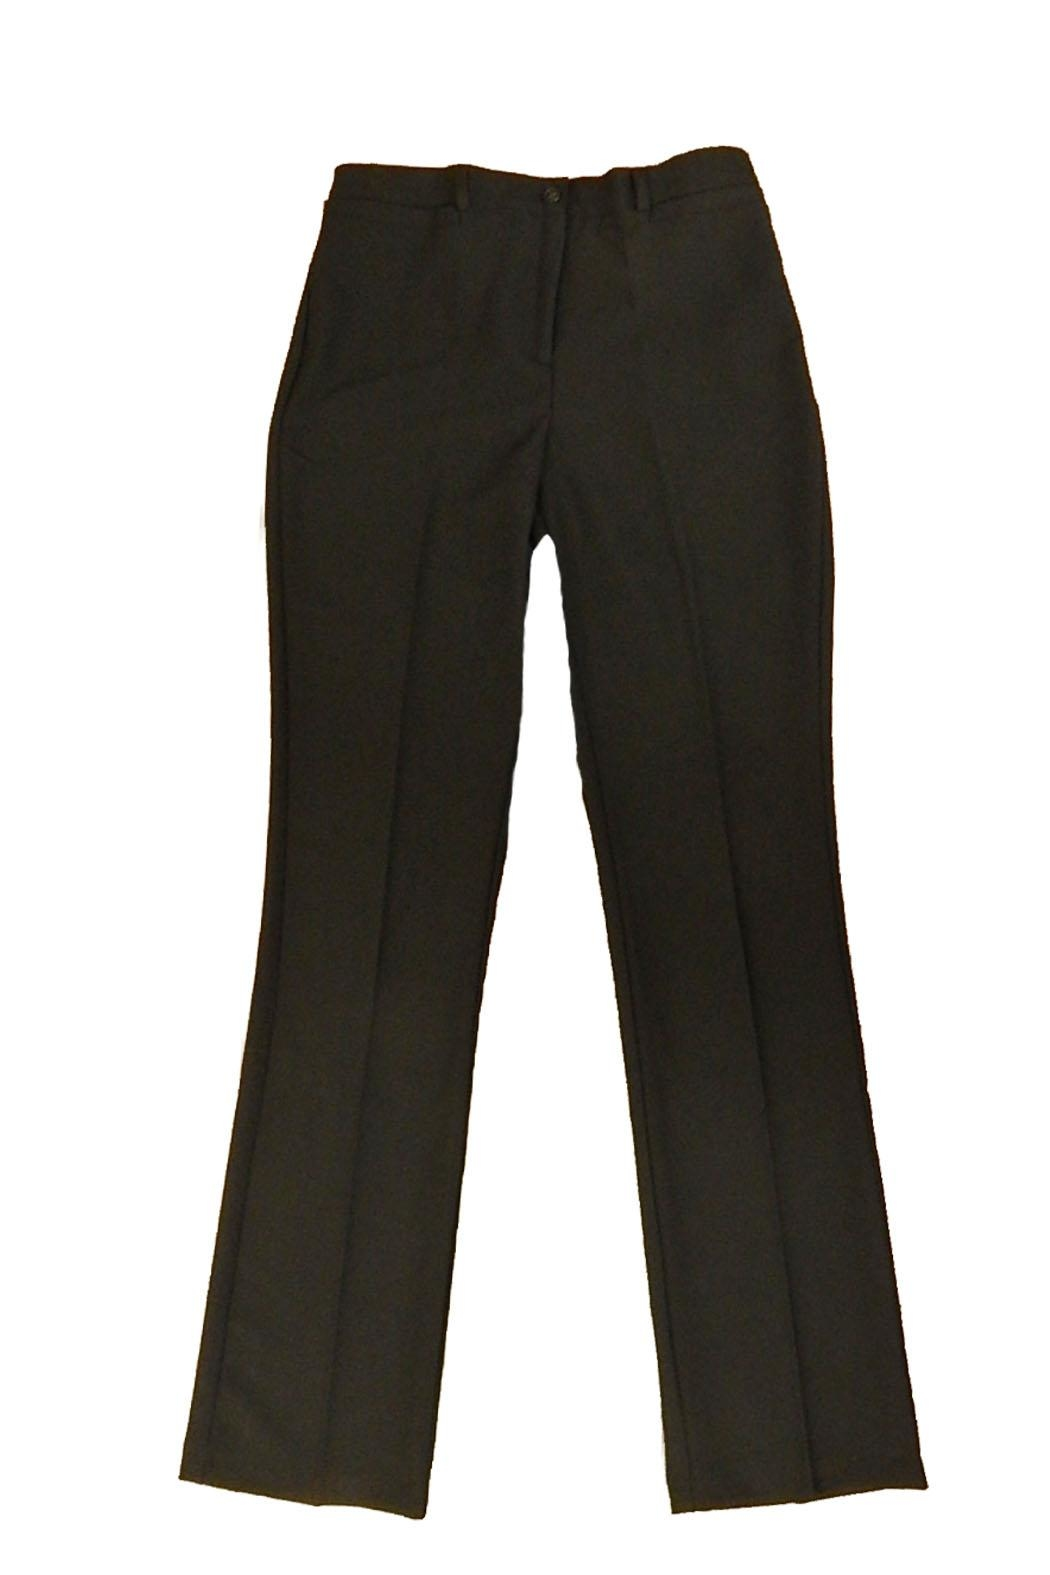 Tribal Classic Black Pants - Front Full Image